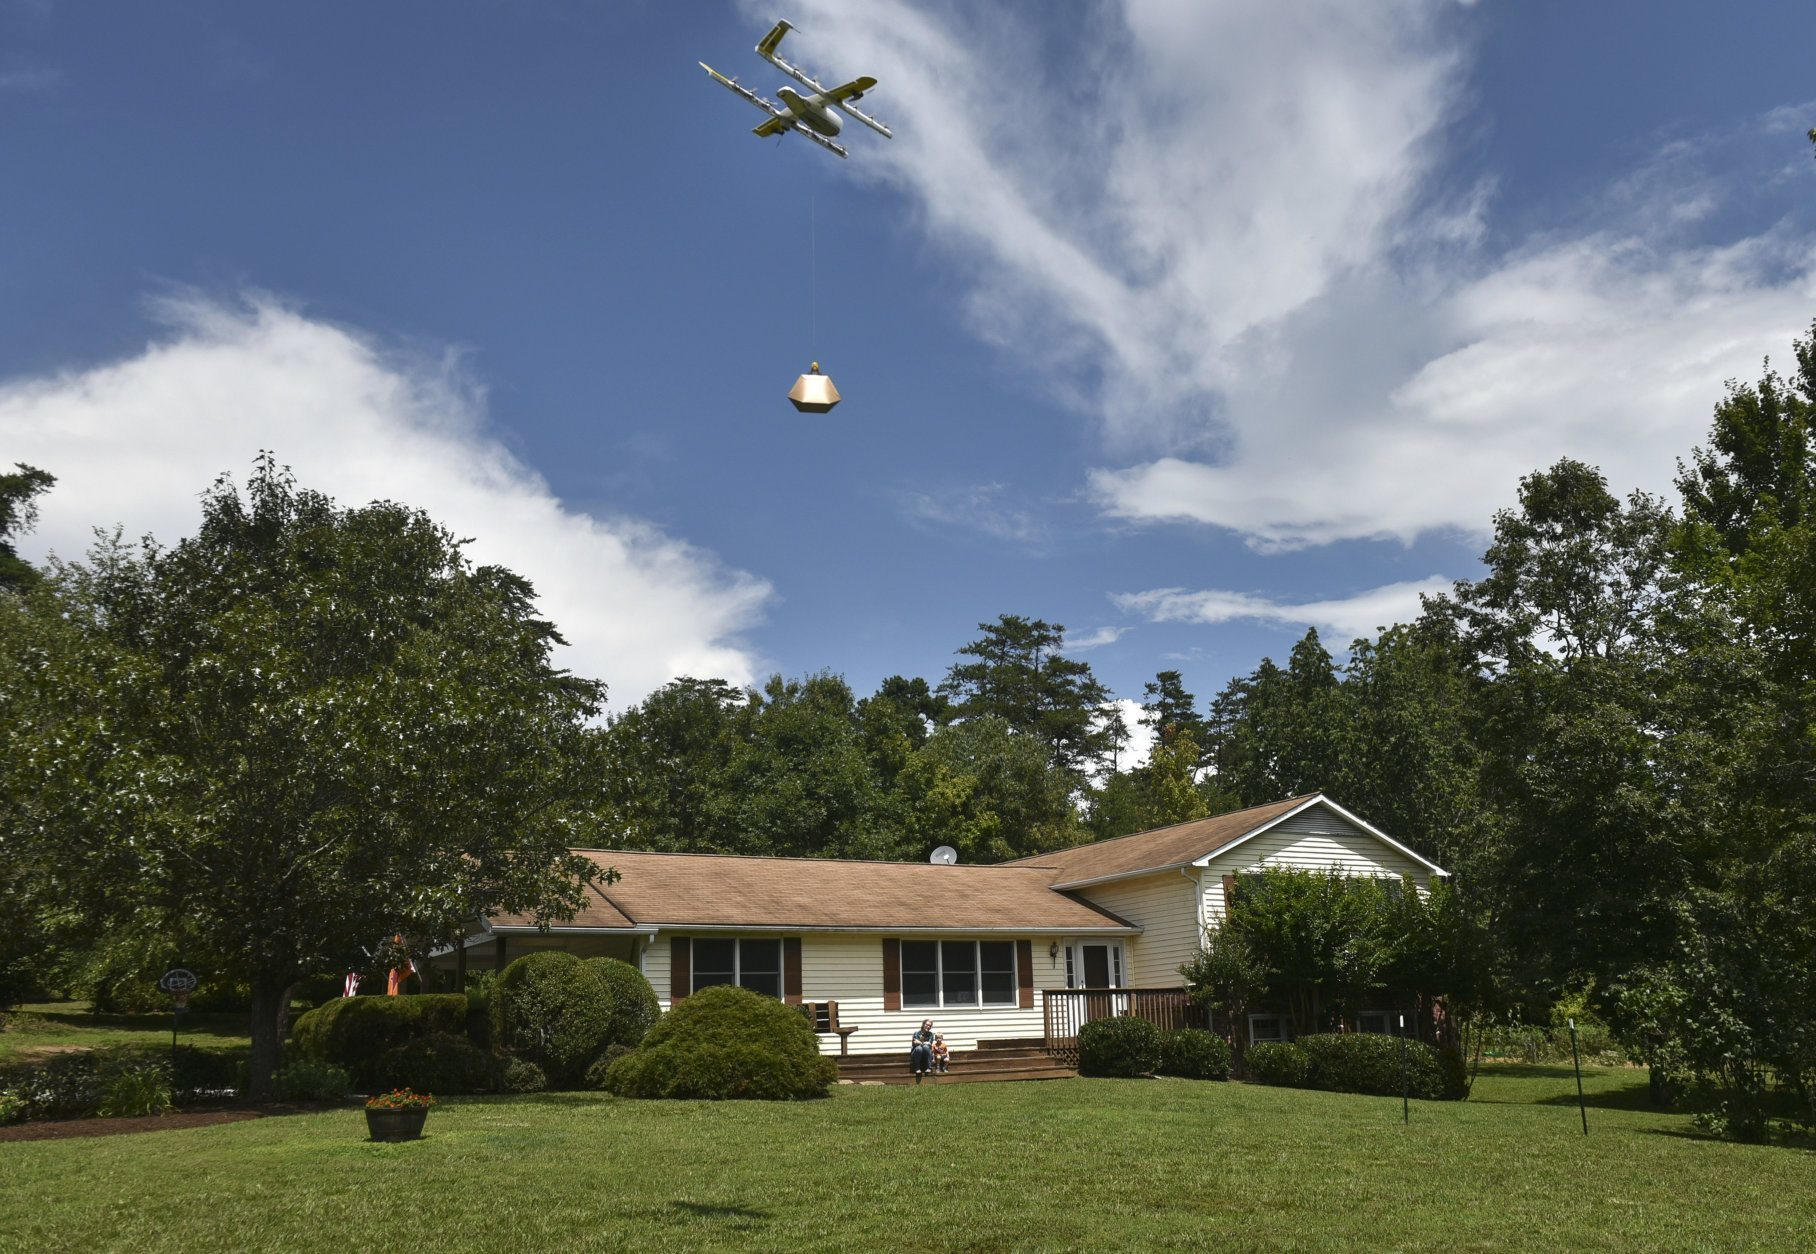 In this Tuesday, Aug, 7, 2018, photo a Wing Hummingbird drone from Project Wing arrives and sets down its package at the delivery location in Blacksburg, Va. Wing, a subsidiary of Google's parent corporation Alphabet, hasn't been allowed to fly long distances, over people and beyond the pilot's line of sight. That changed when Virginia was selected as one of 10 areas to participate in an experimental program that would lower barriers on the technology. (Michael Shroyer via AP)